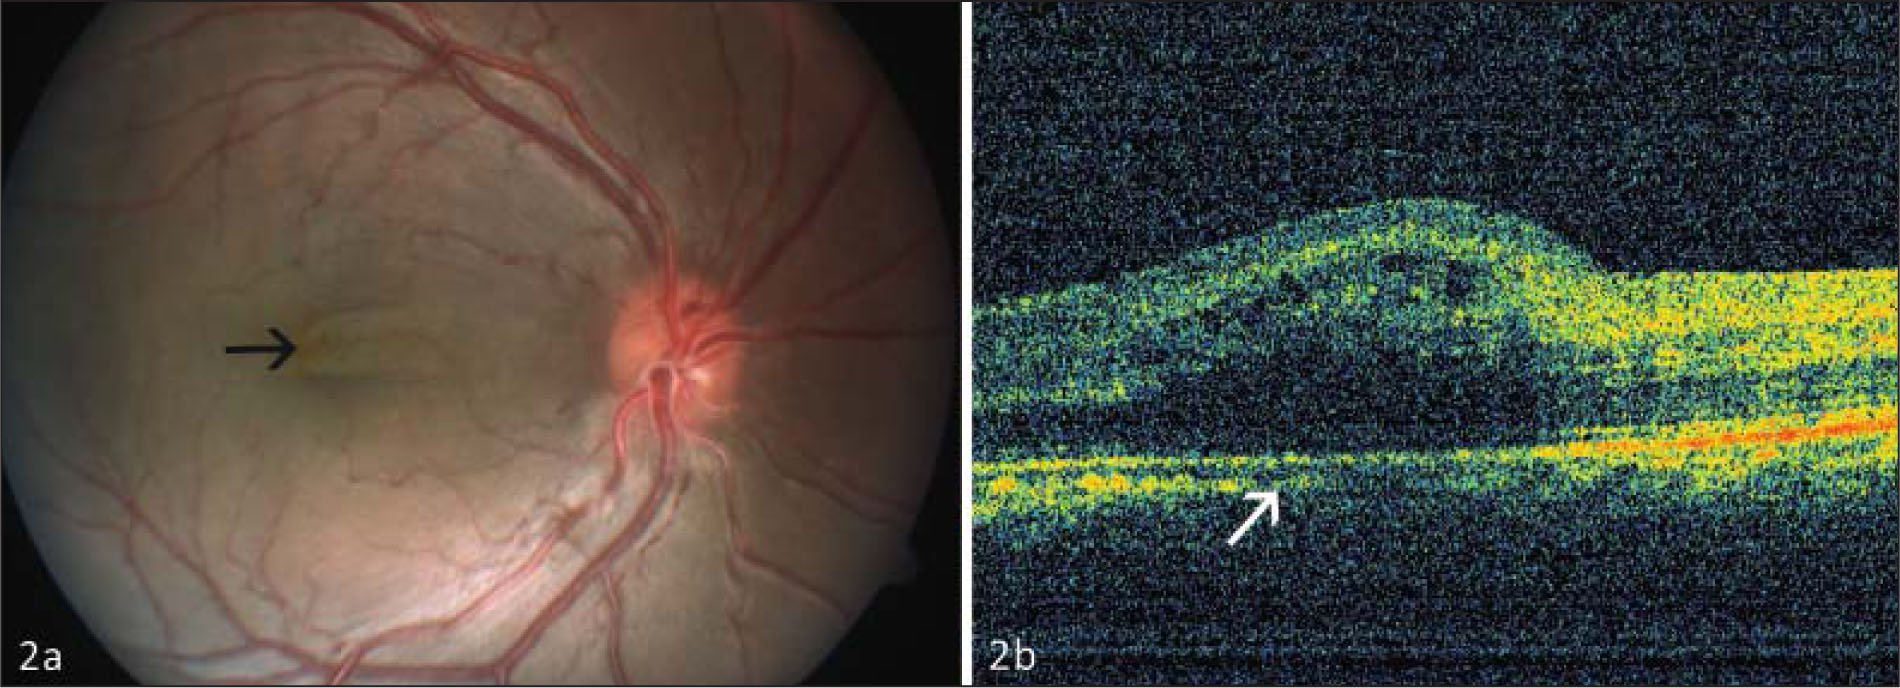 (A) Fundus photograph of the right eye showing papillomacular folds. (B) Optical coherence tomography of the right eye revealing schisis between the inner and outer retinal layers.